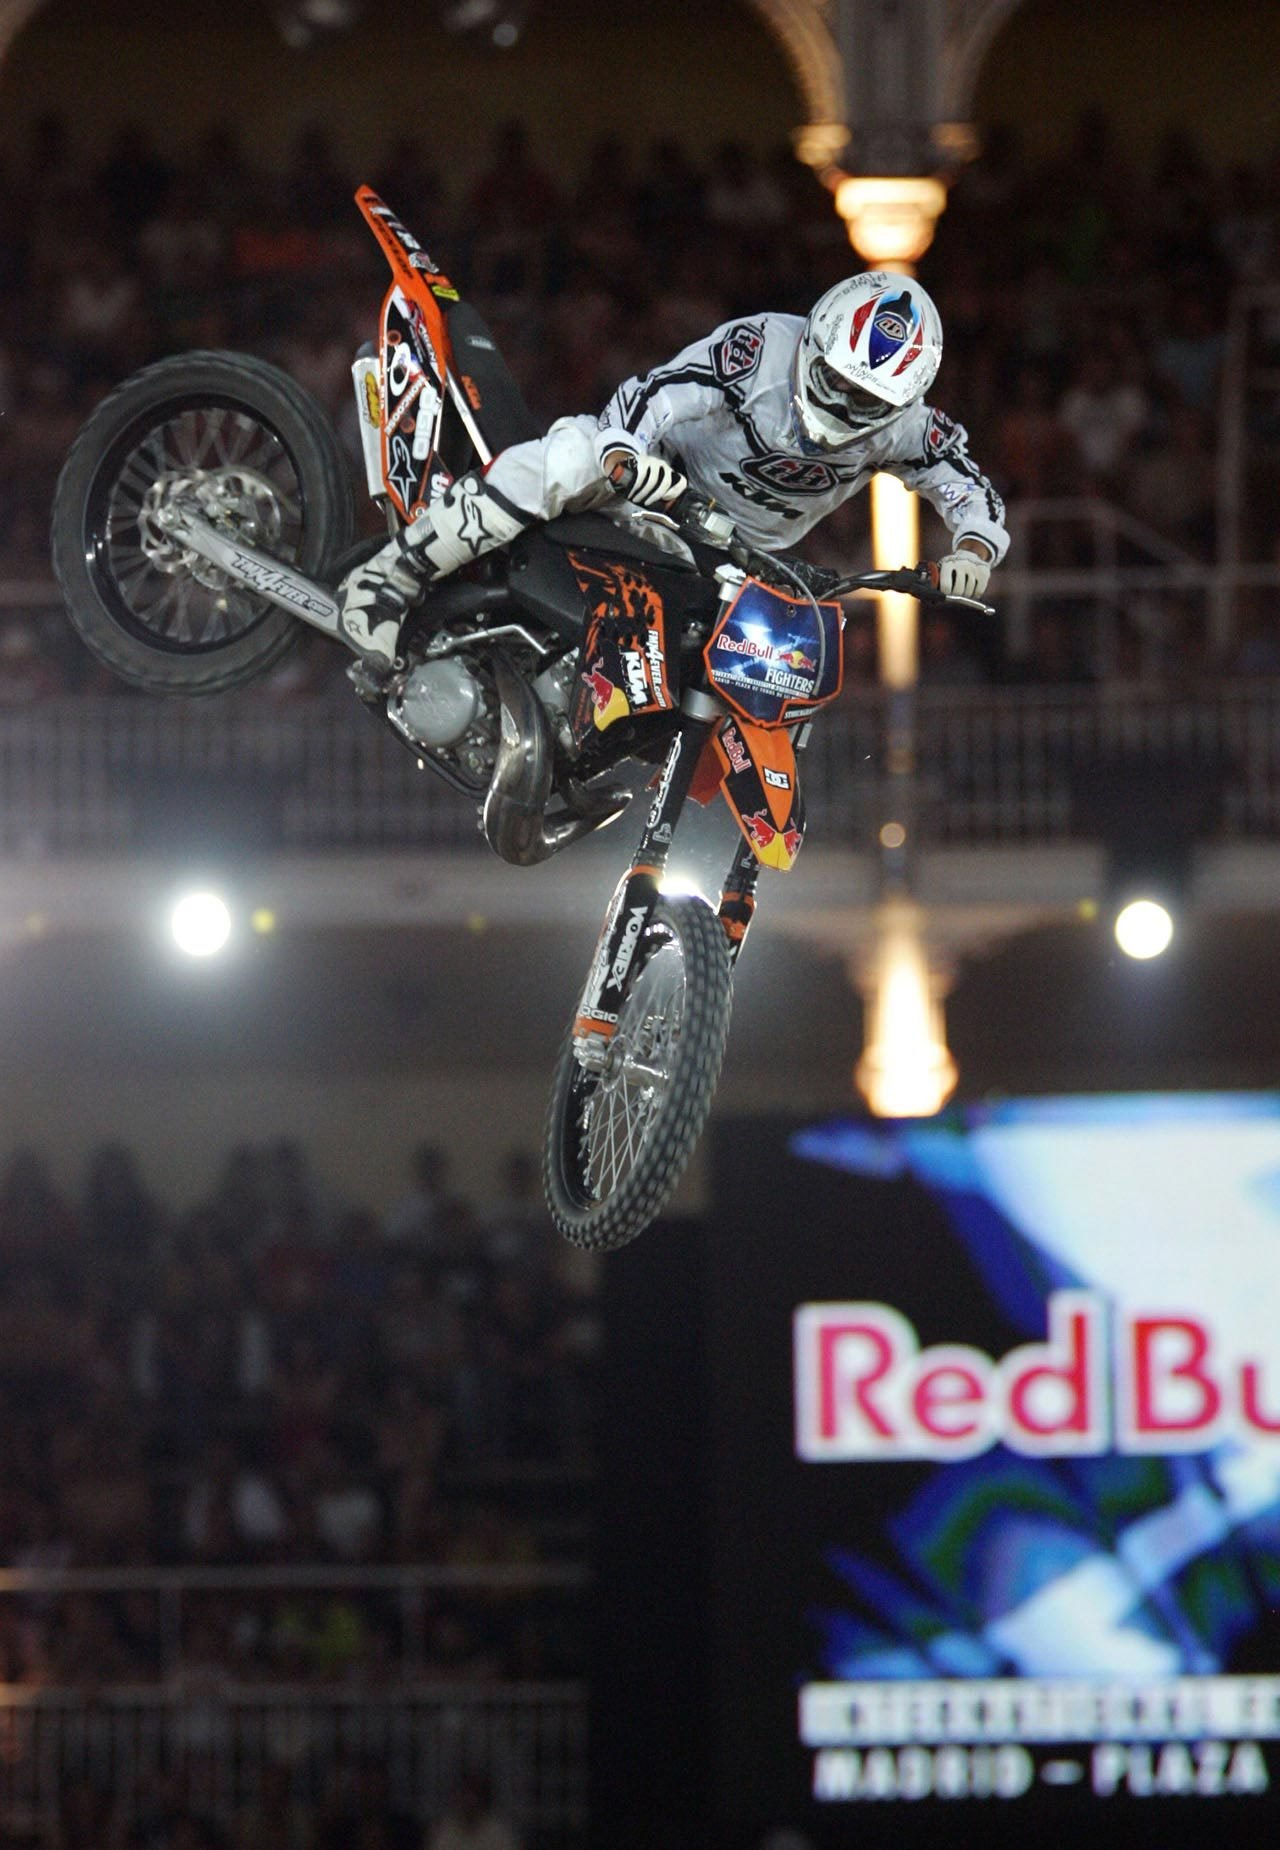 red bull x fighters 2008 picture 239279 motorcycle news top speed. Black Bedroom Furniture Sets. Home Design Ideas